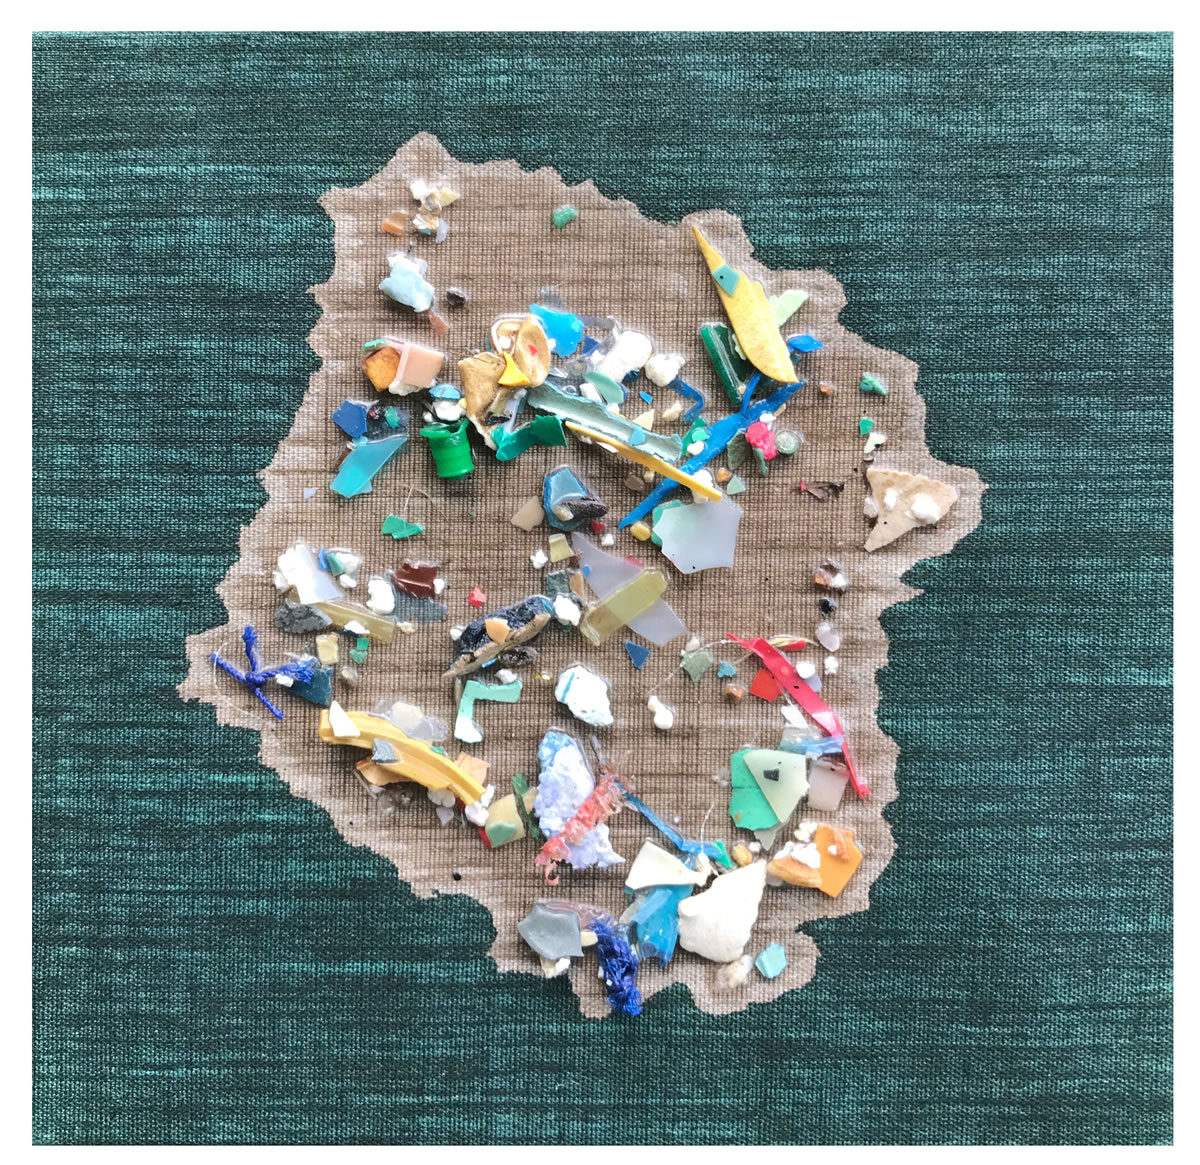 Pacific Garbage Patch Study #12